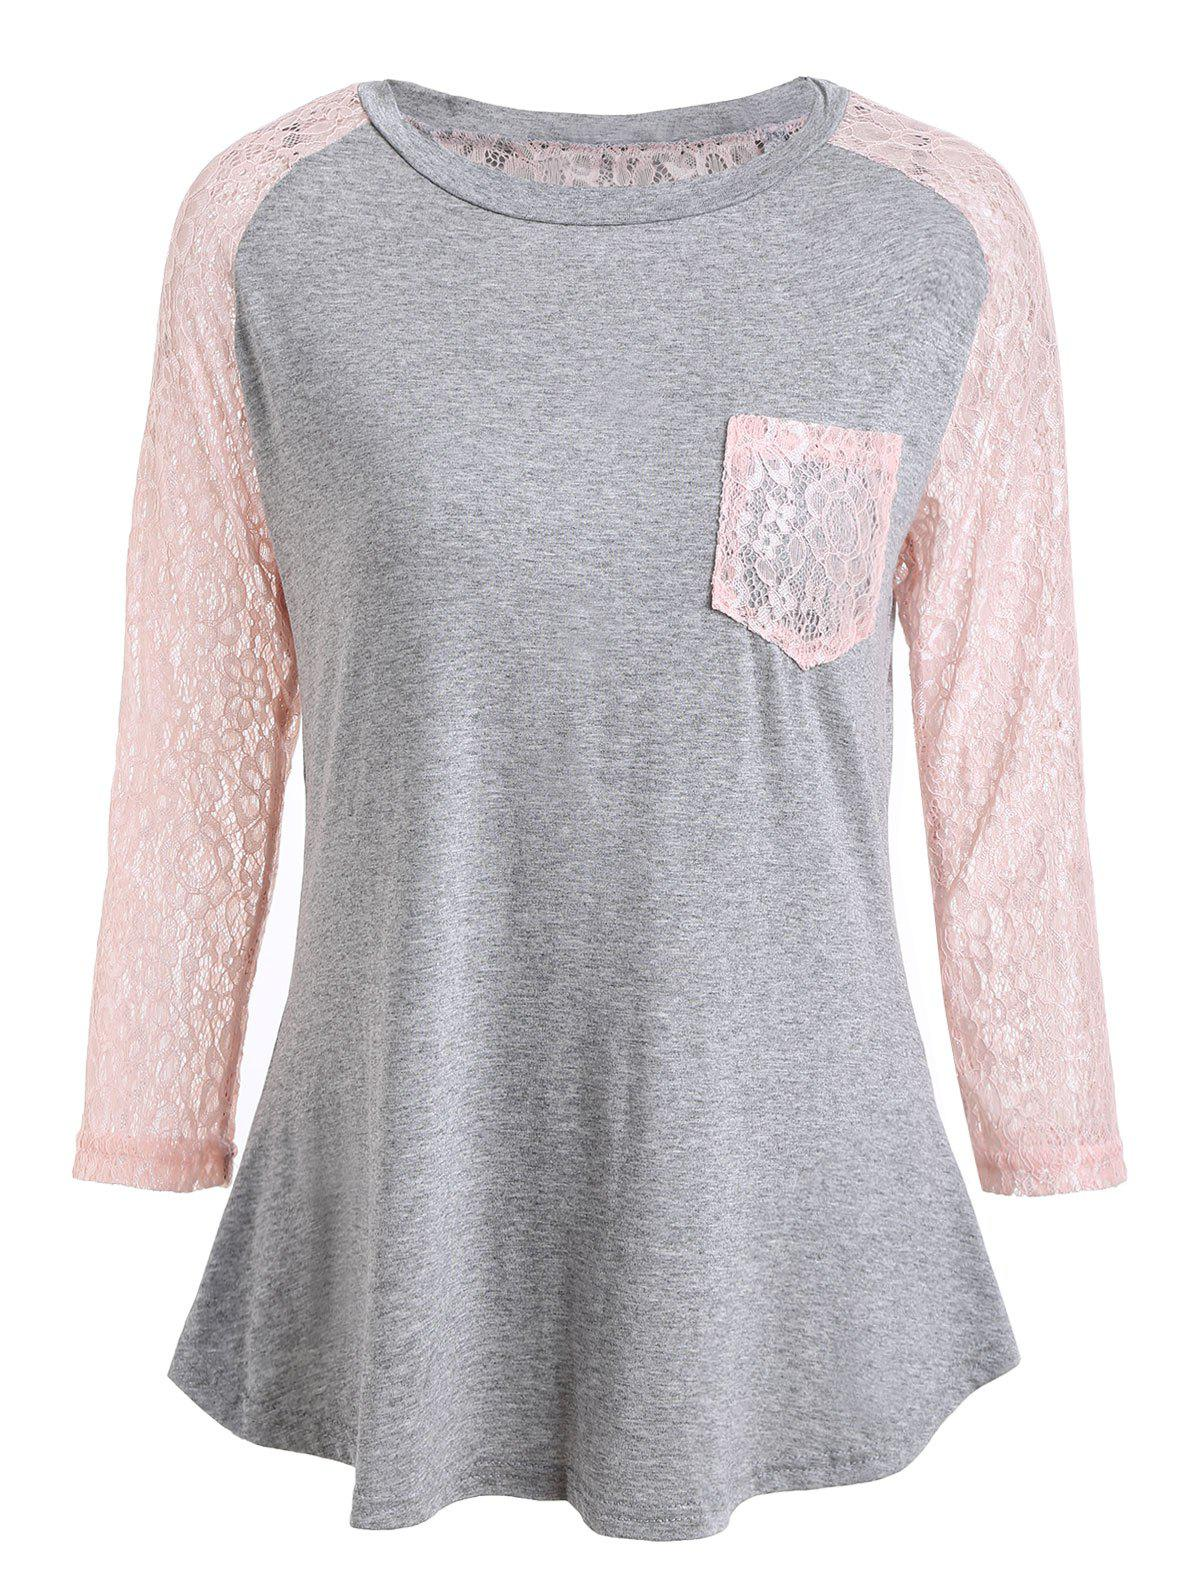 Lace Insert Raglan Sleeve T-shirt with Pocket lace insert raglan sleeve t shirt with pocket